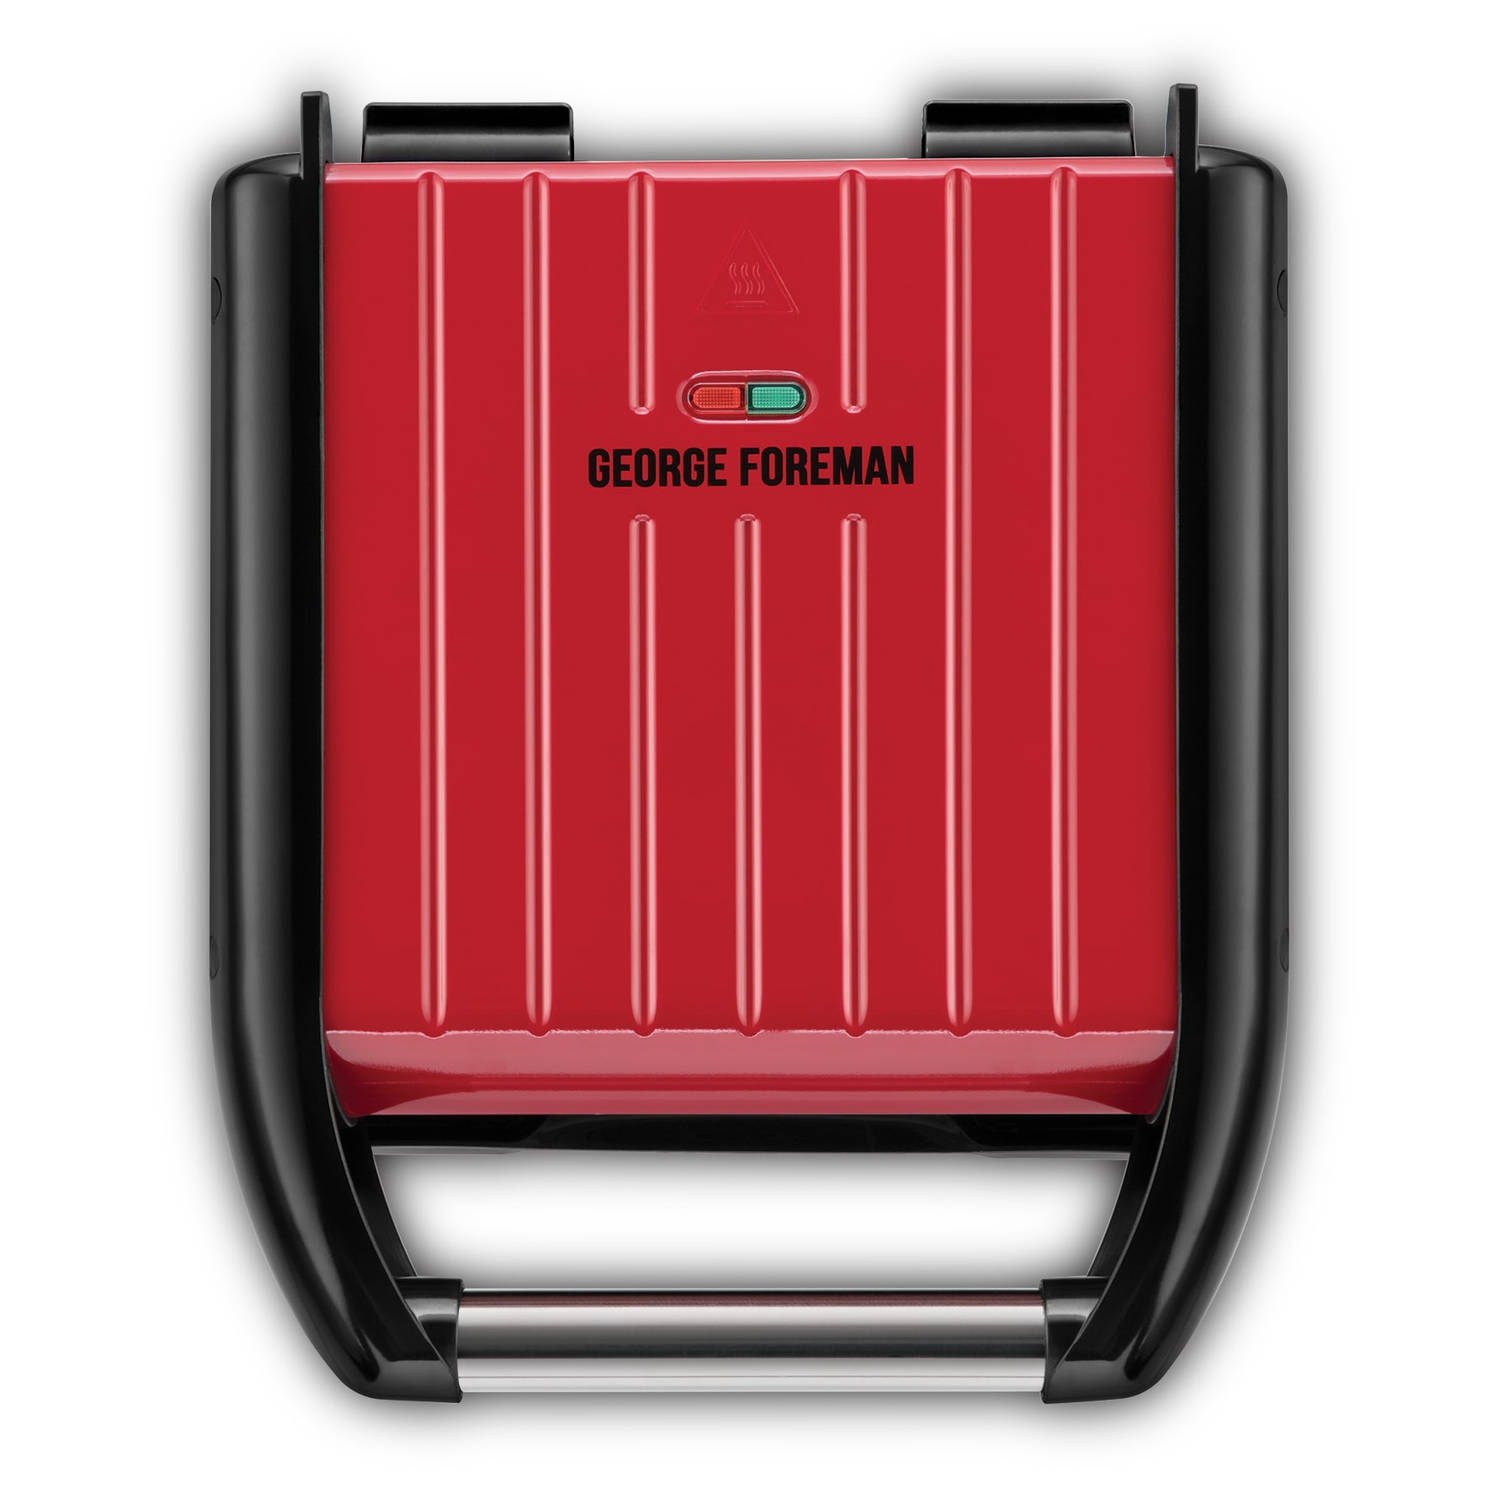 George Foreman contactgrill Compact - rood